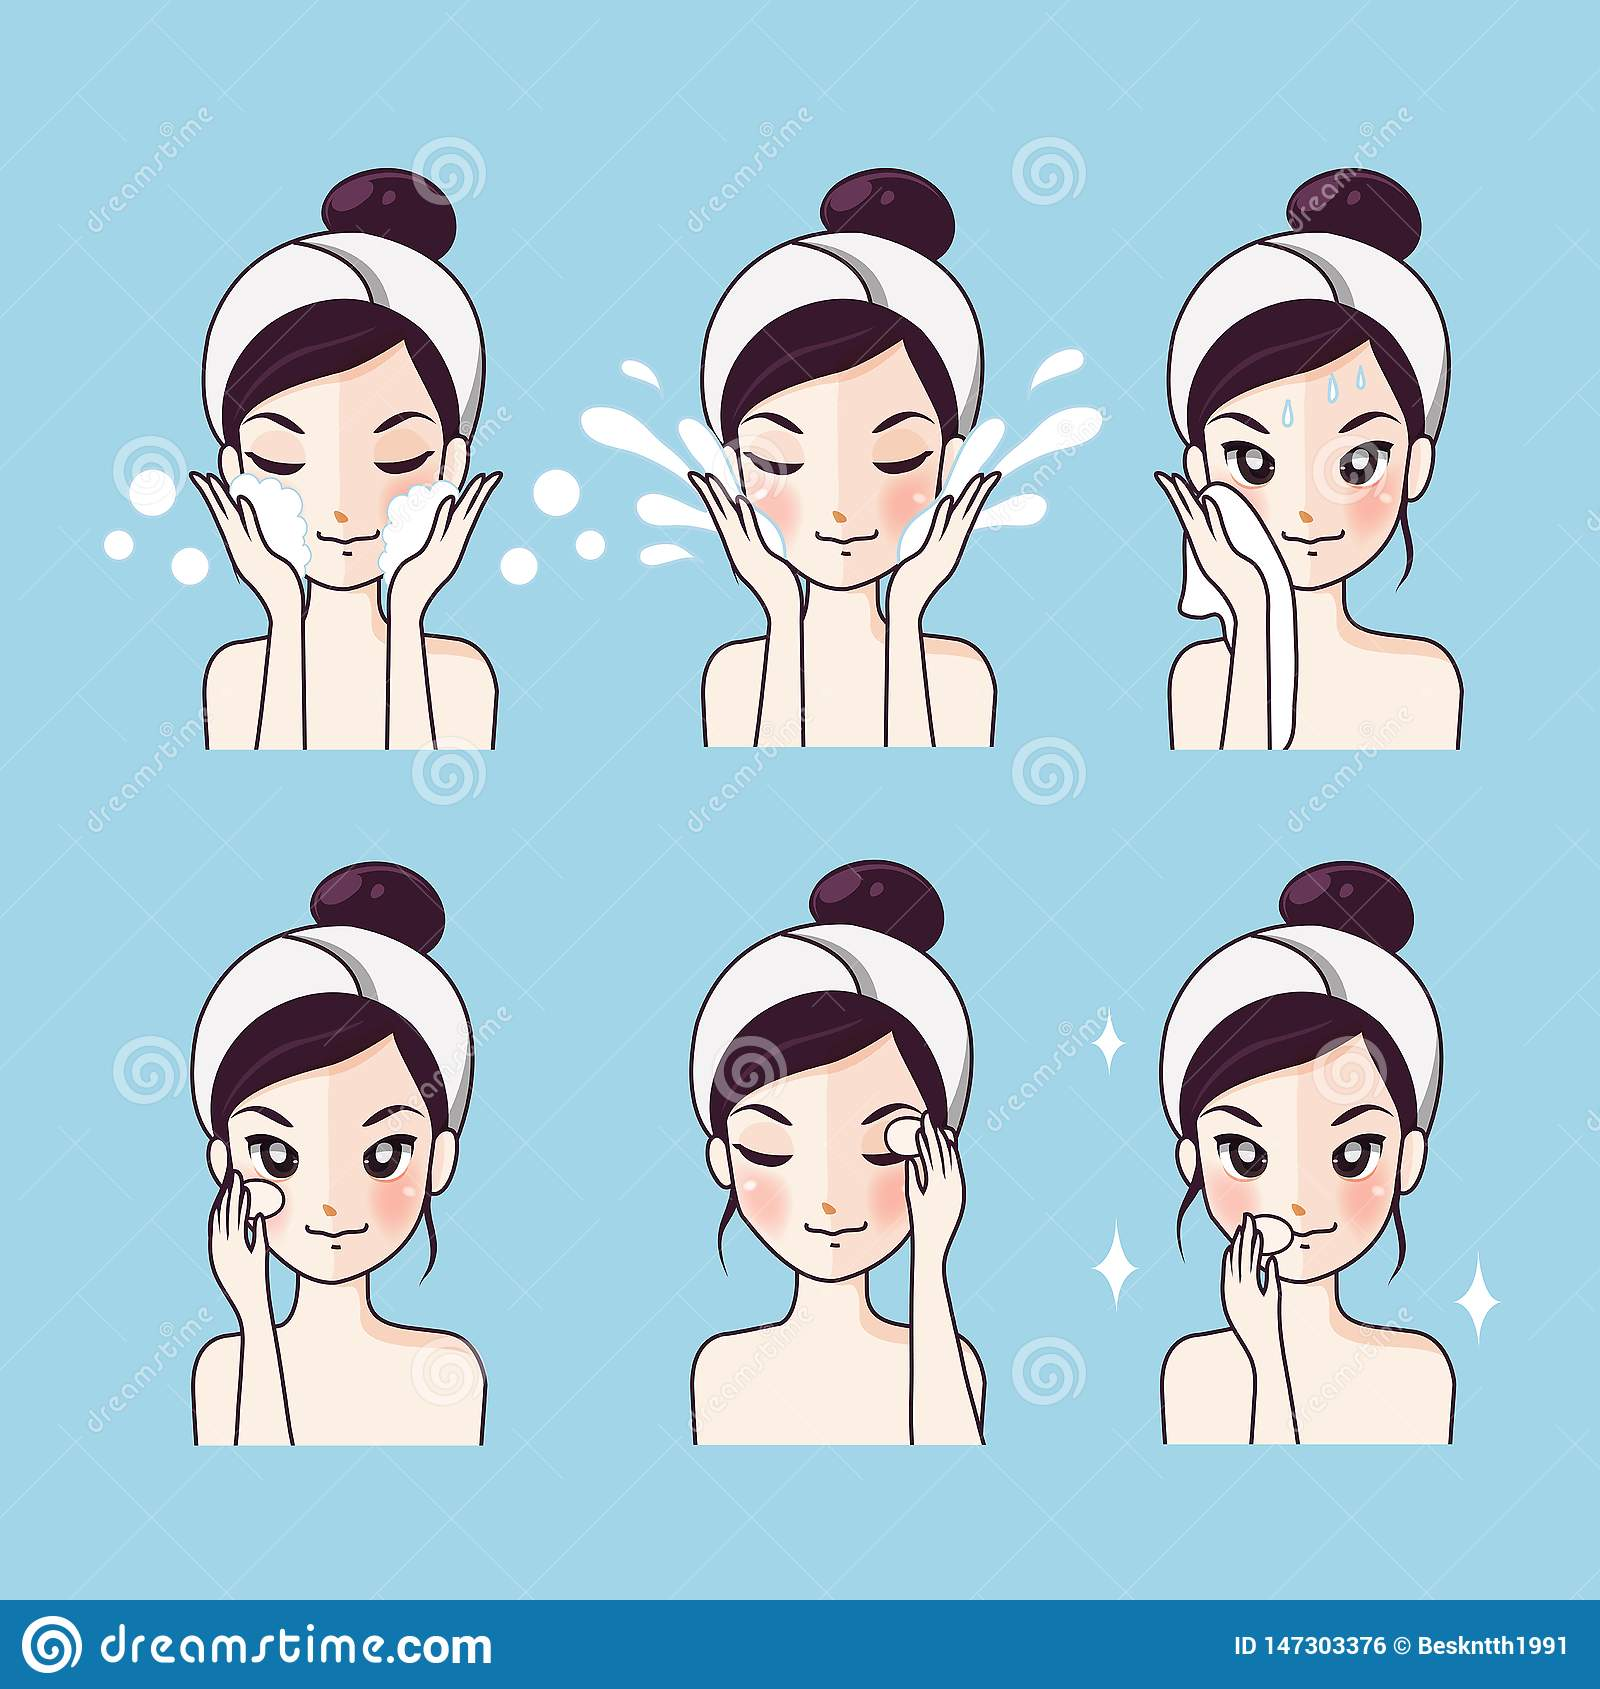 How To Wash Step Facial Cleansing Stock Vector